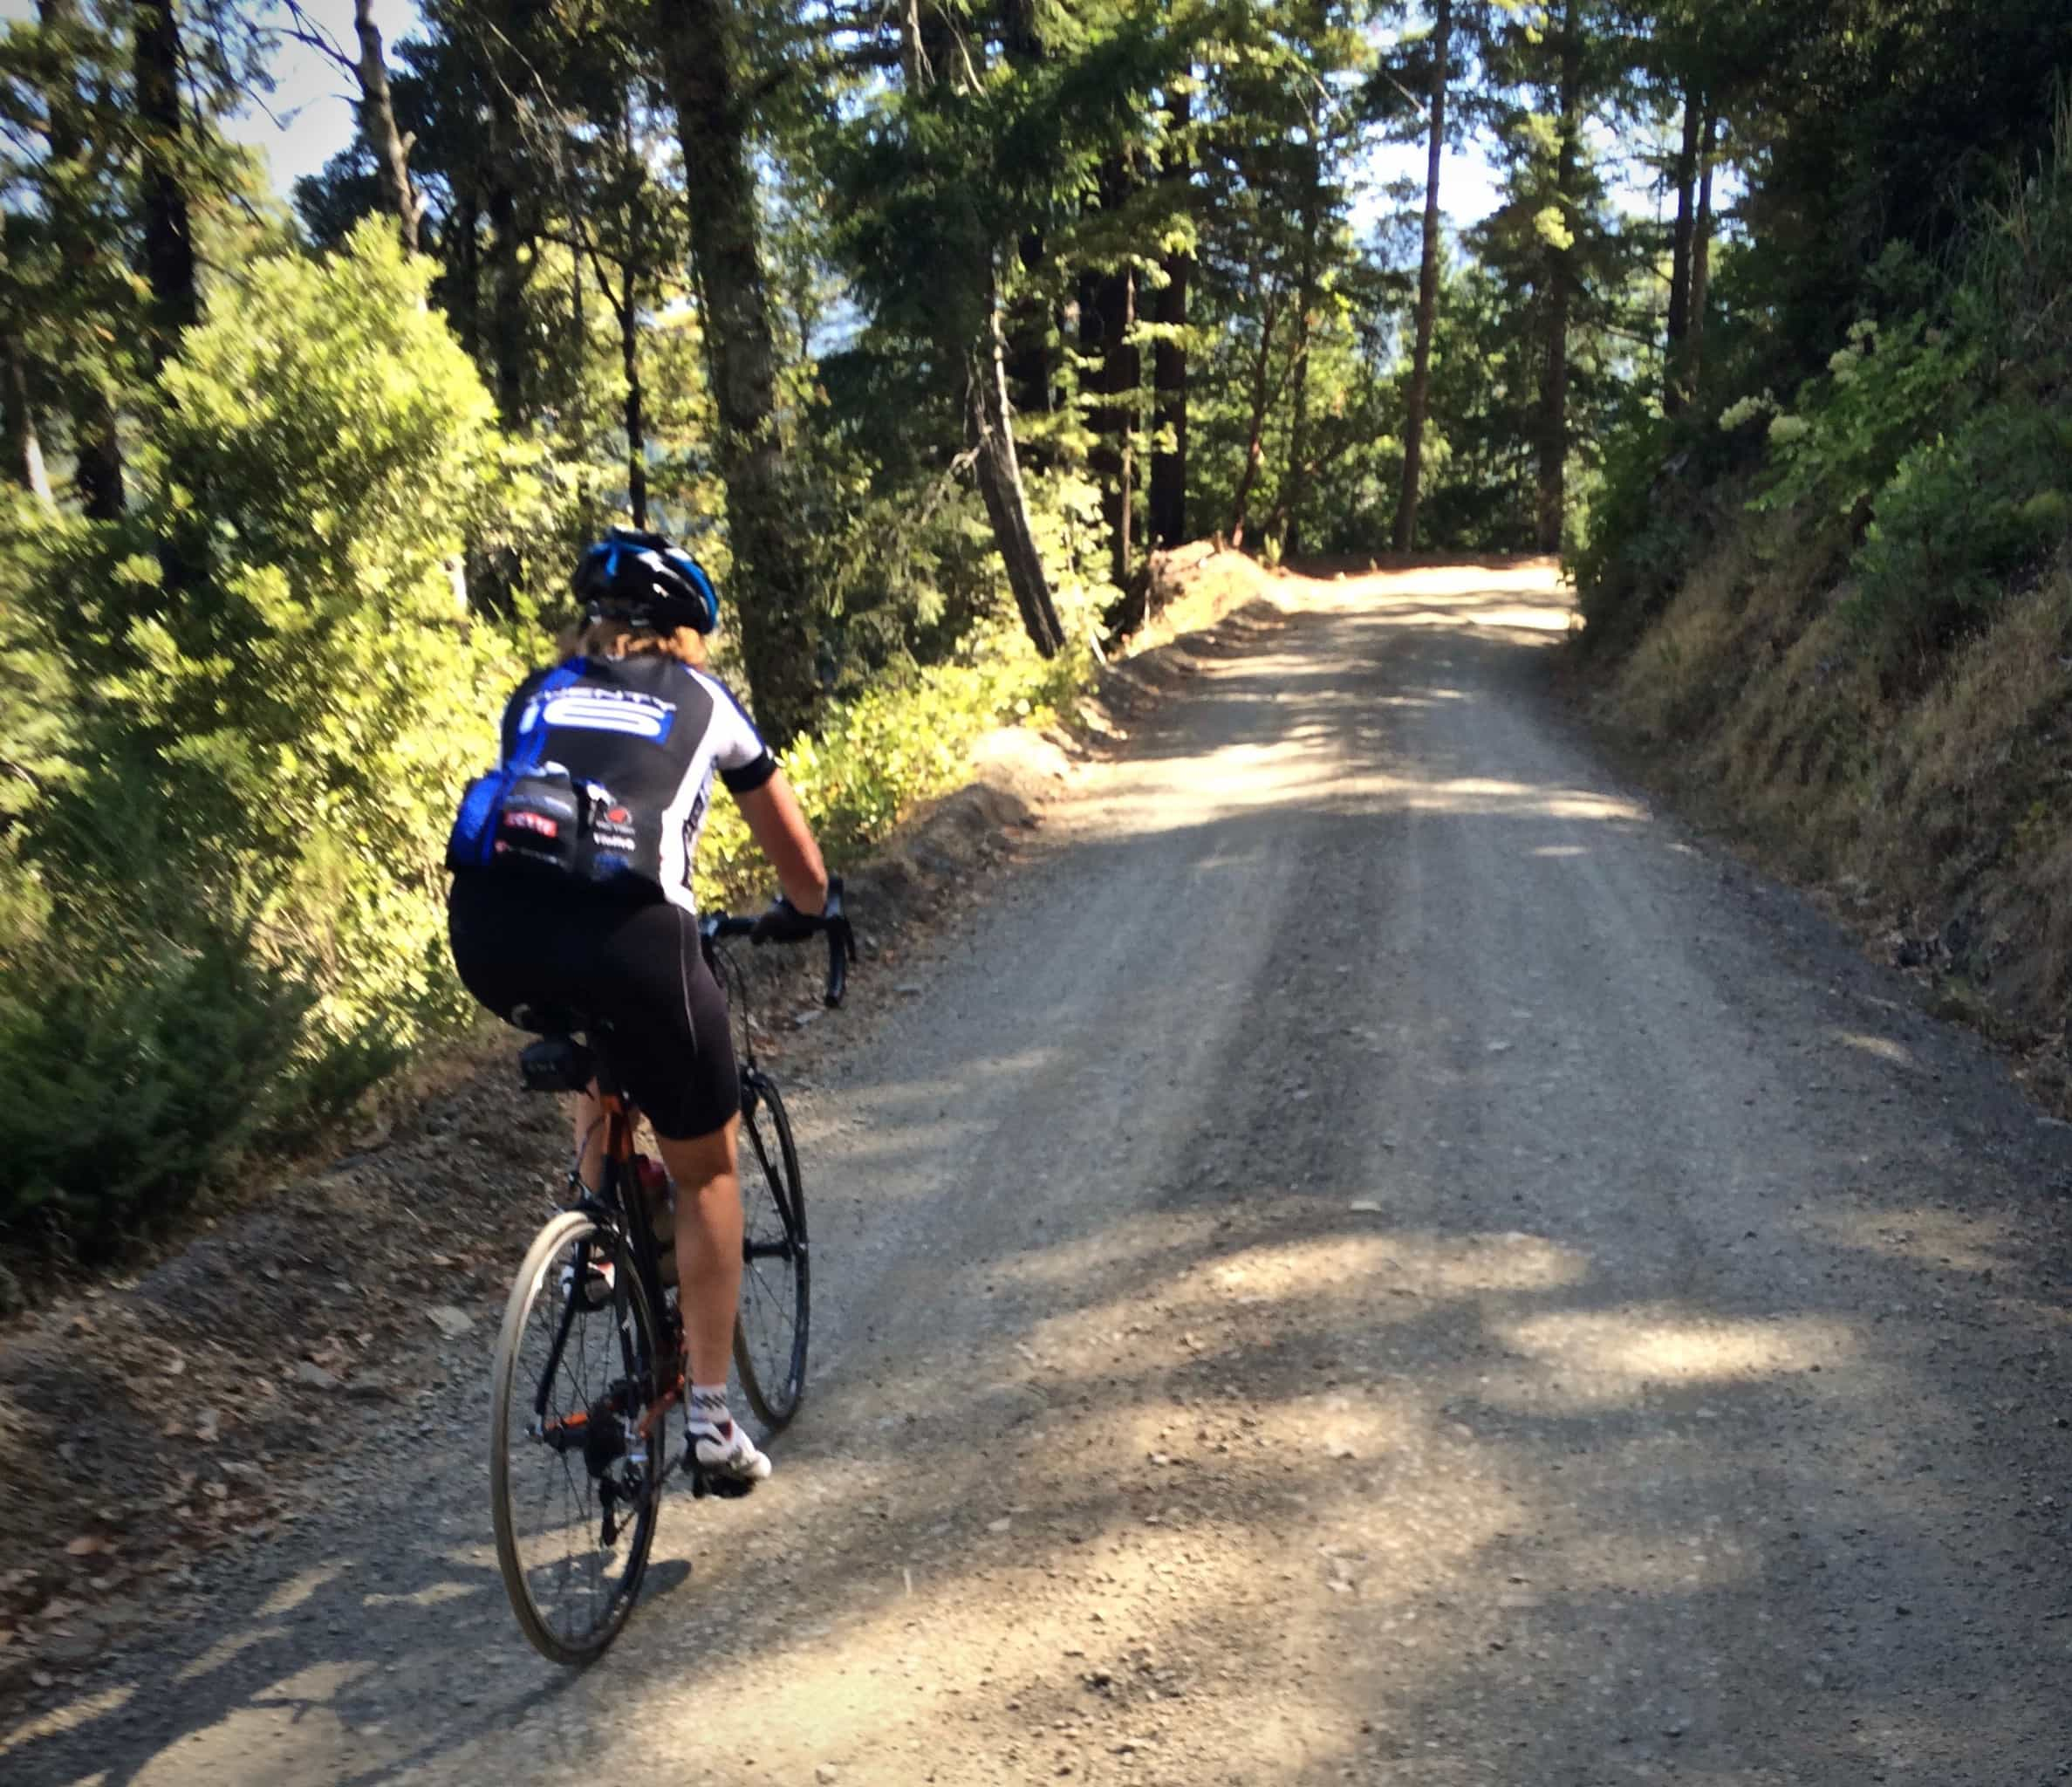 Cyclist on gravel road leading to Dyerville Loop road in Humboldt county, California.